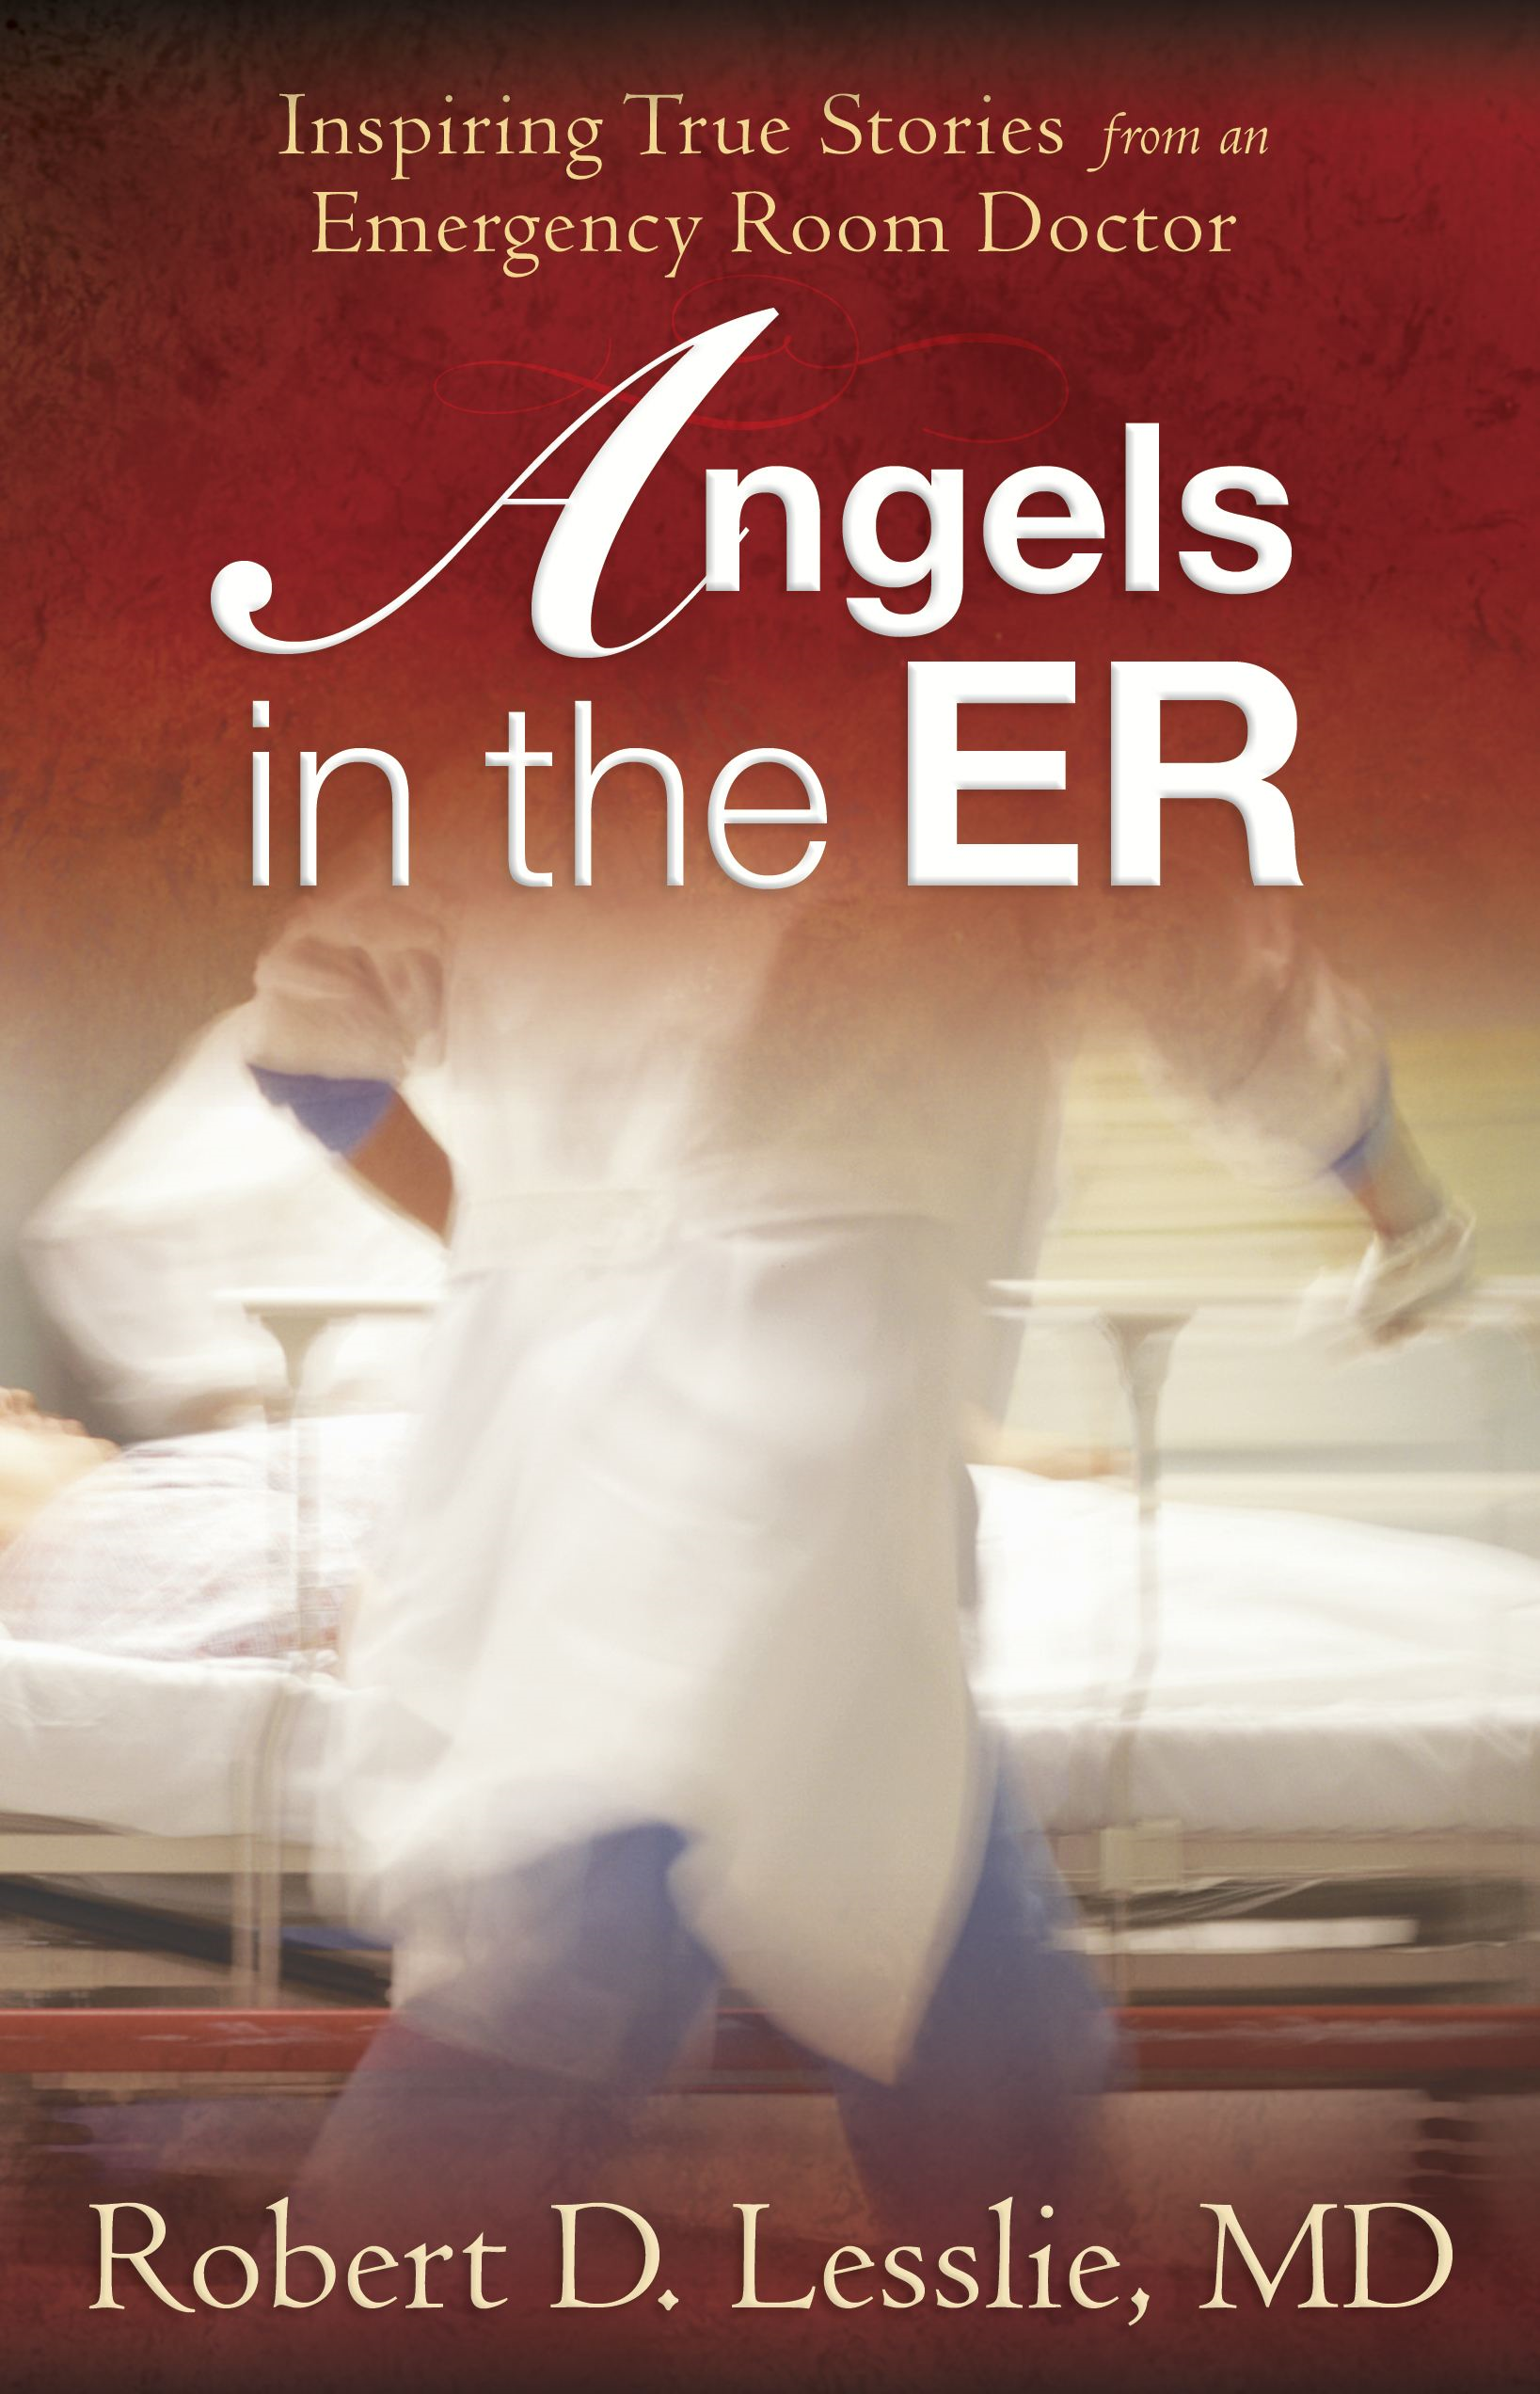 Angels in the ER By: Robert D. Lesslie